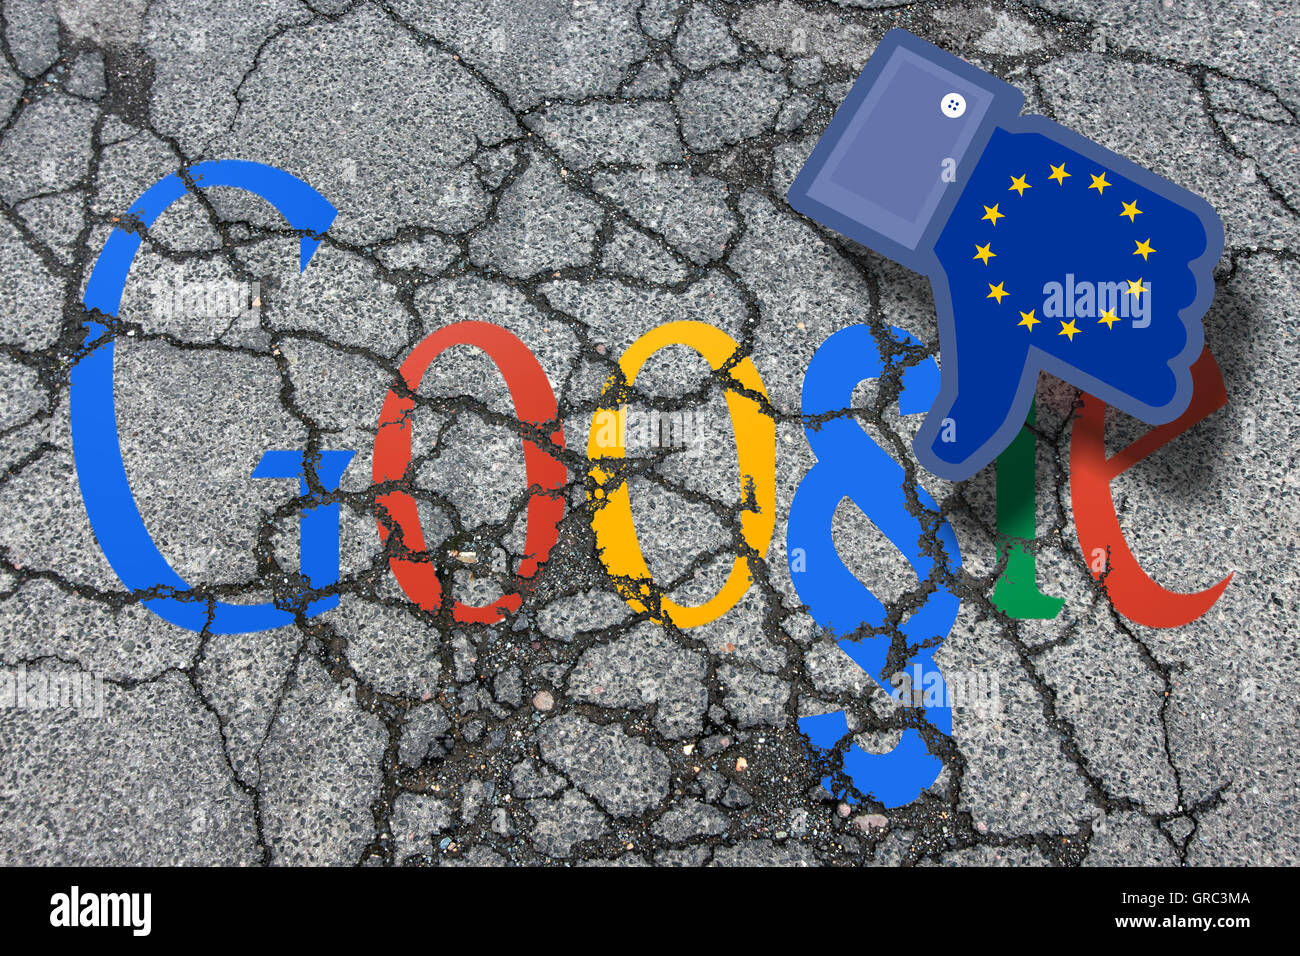 Eroding Modified Google Sign On An Eroding Pavement With Dislike Icon And Flag Of Eu - Stock Image